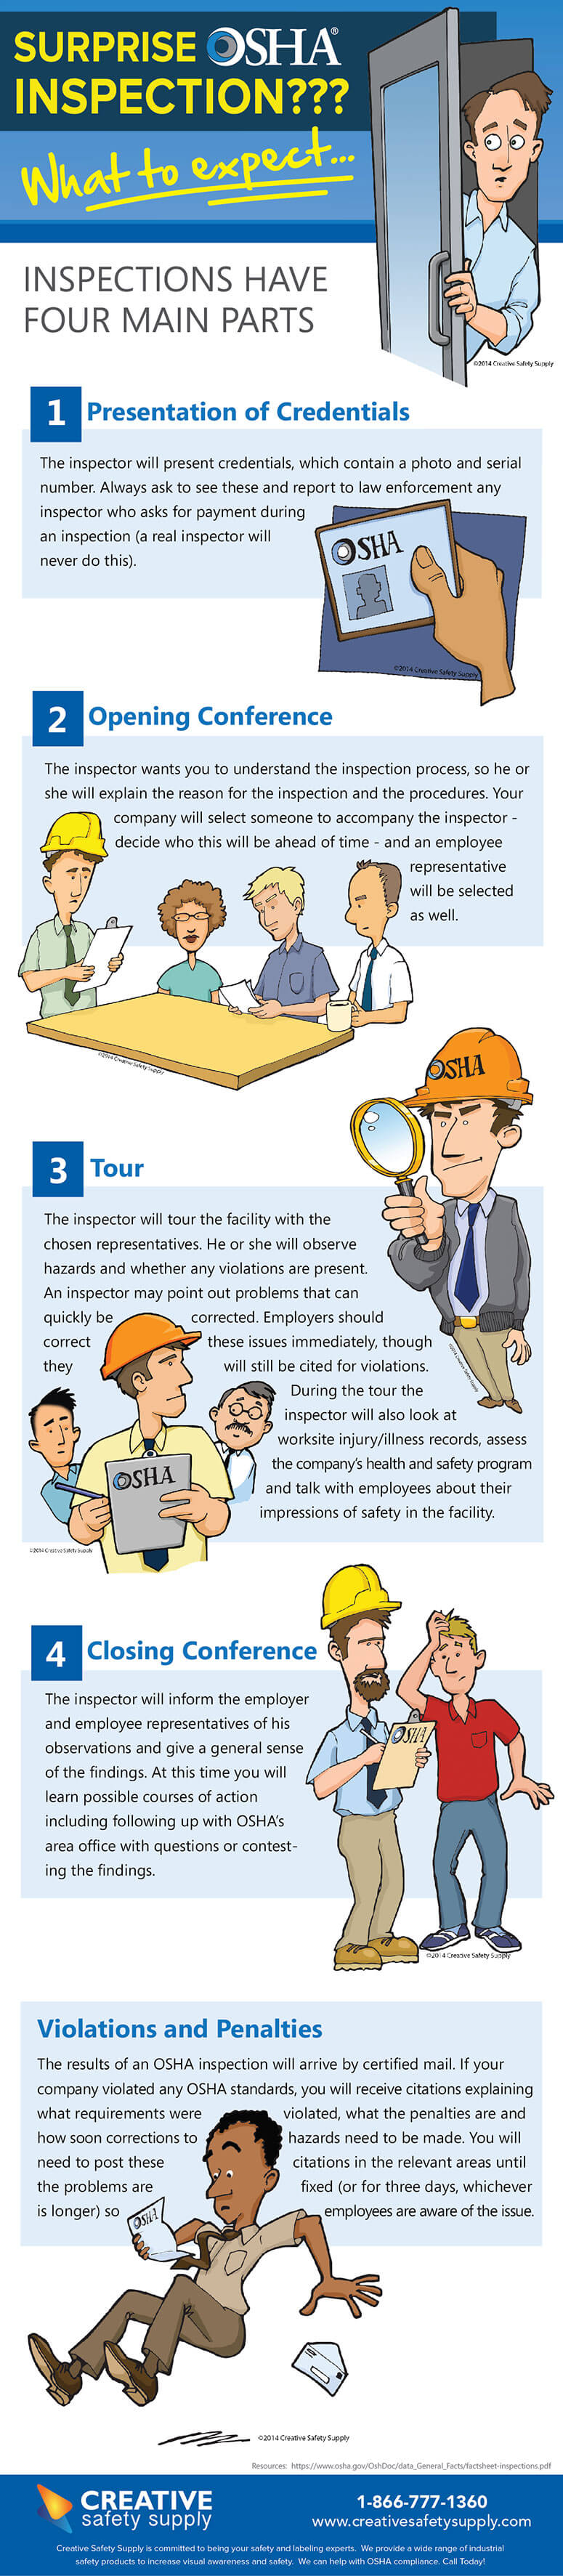 Surprise OSHA Inspection? What to Expect